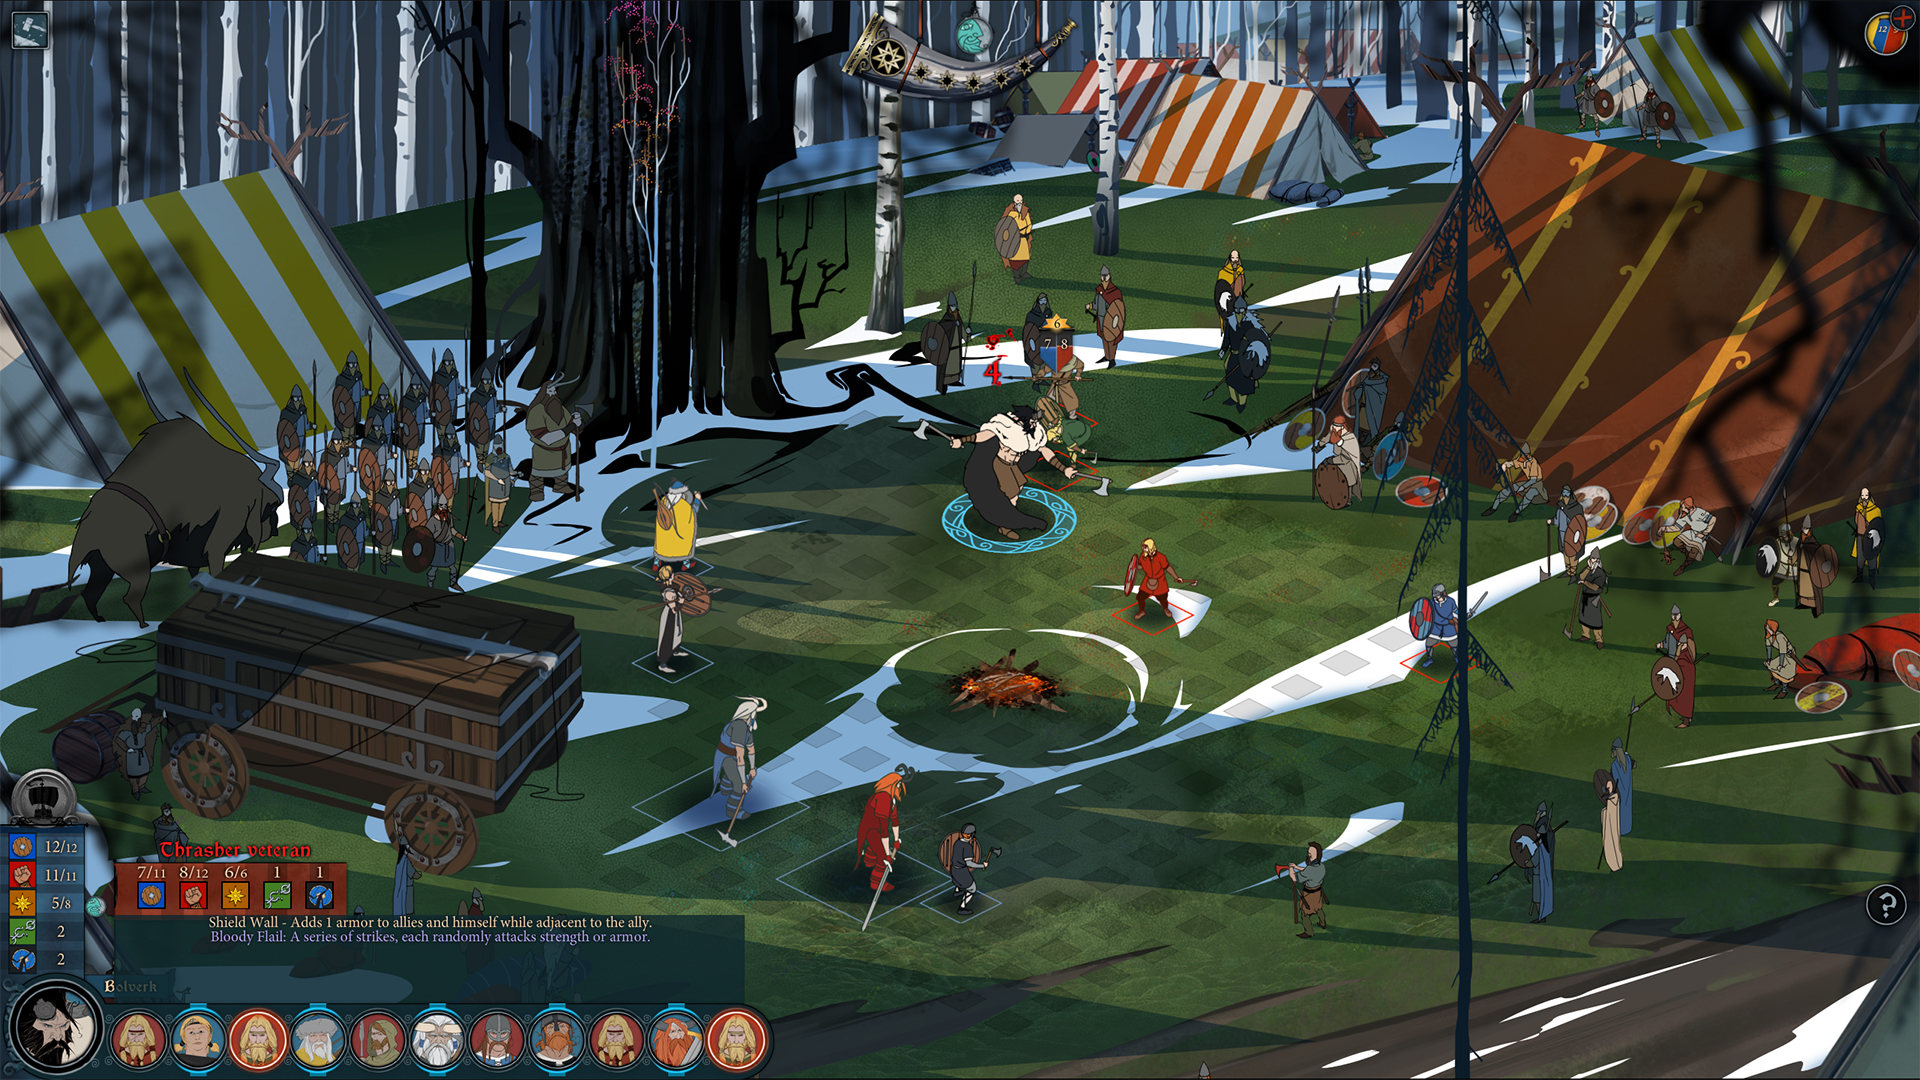 A screenshot of The Banner Saga's isometric battlefield.